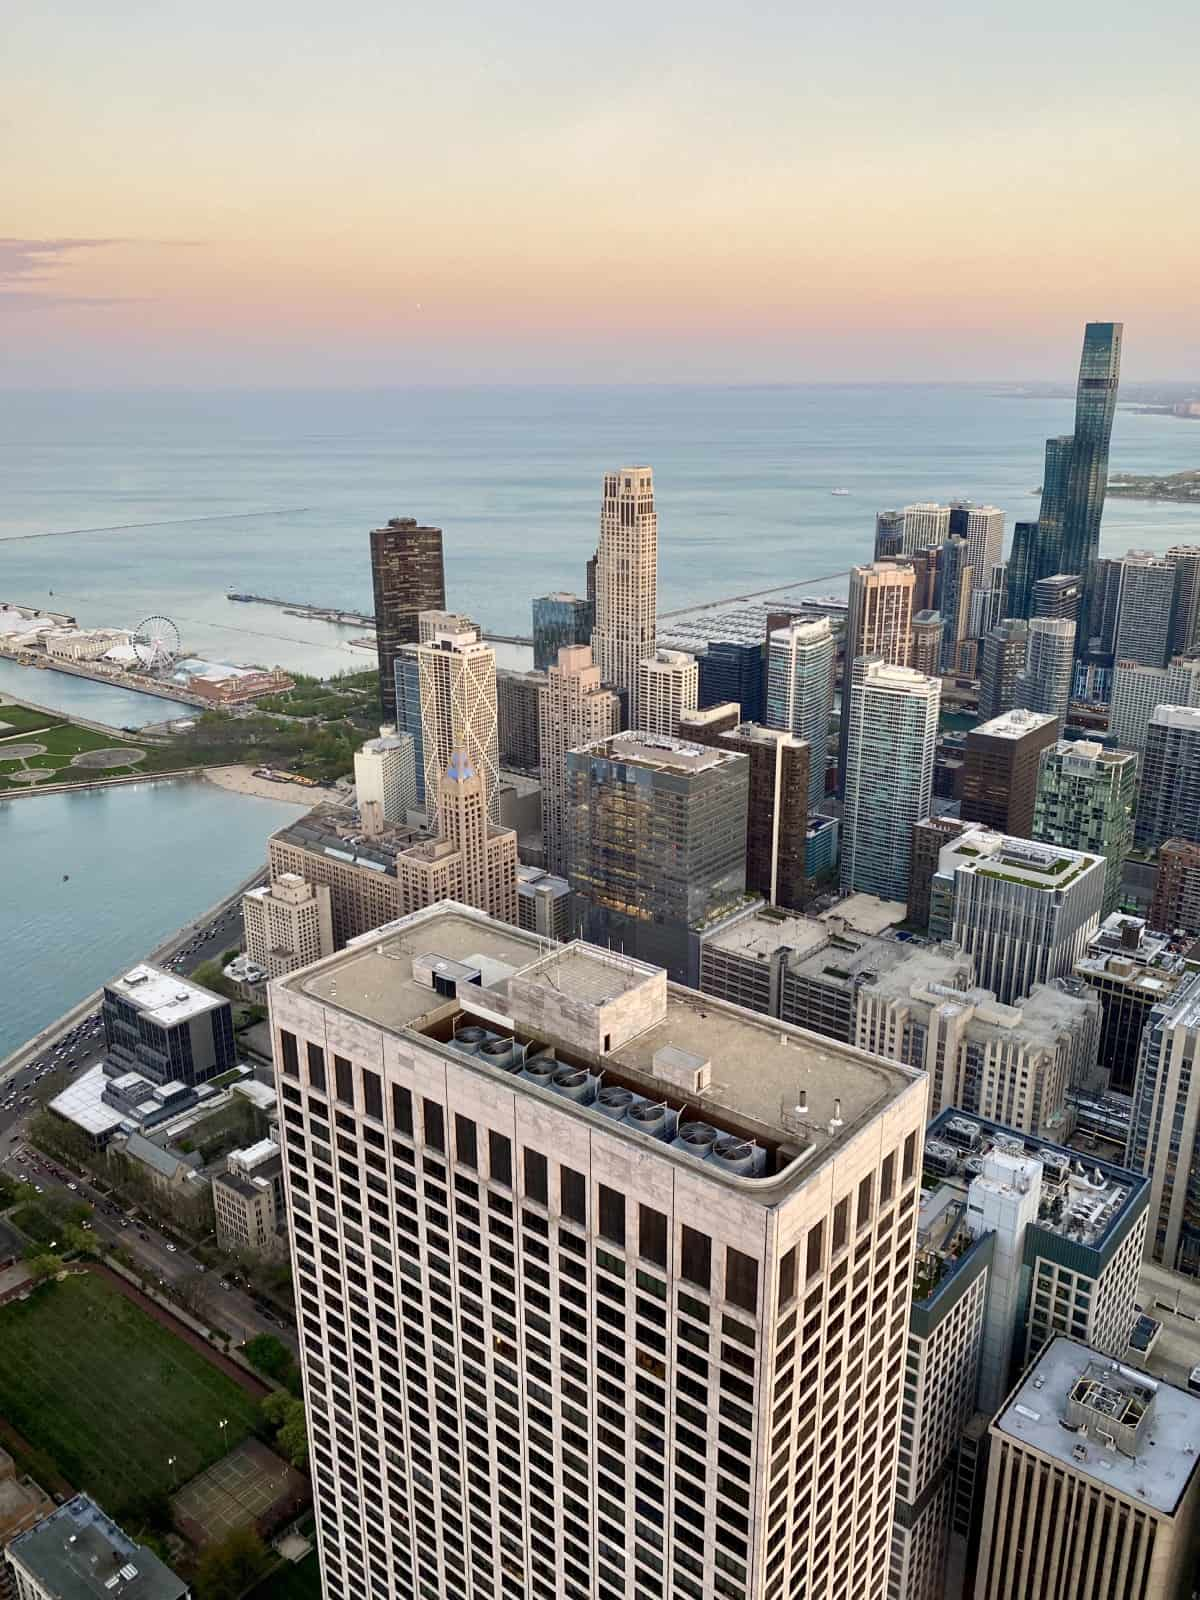 Things to do in Chicago - the Signature Lounge is a great way to get a 96th floor view for the price of a cocktail